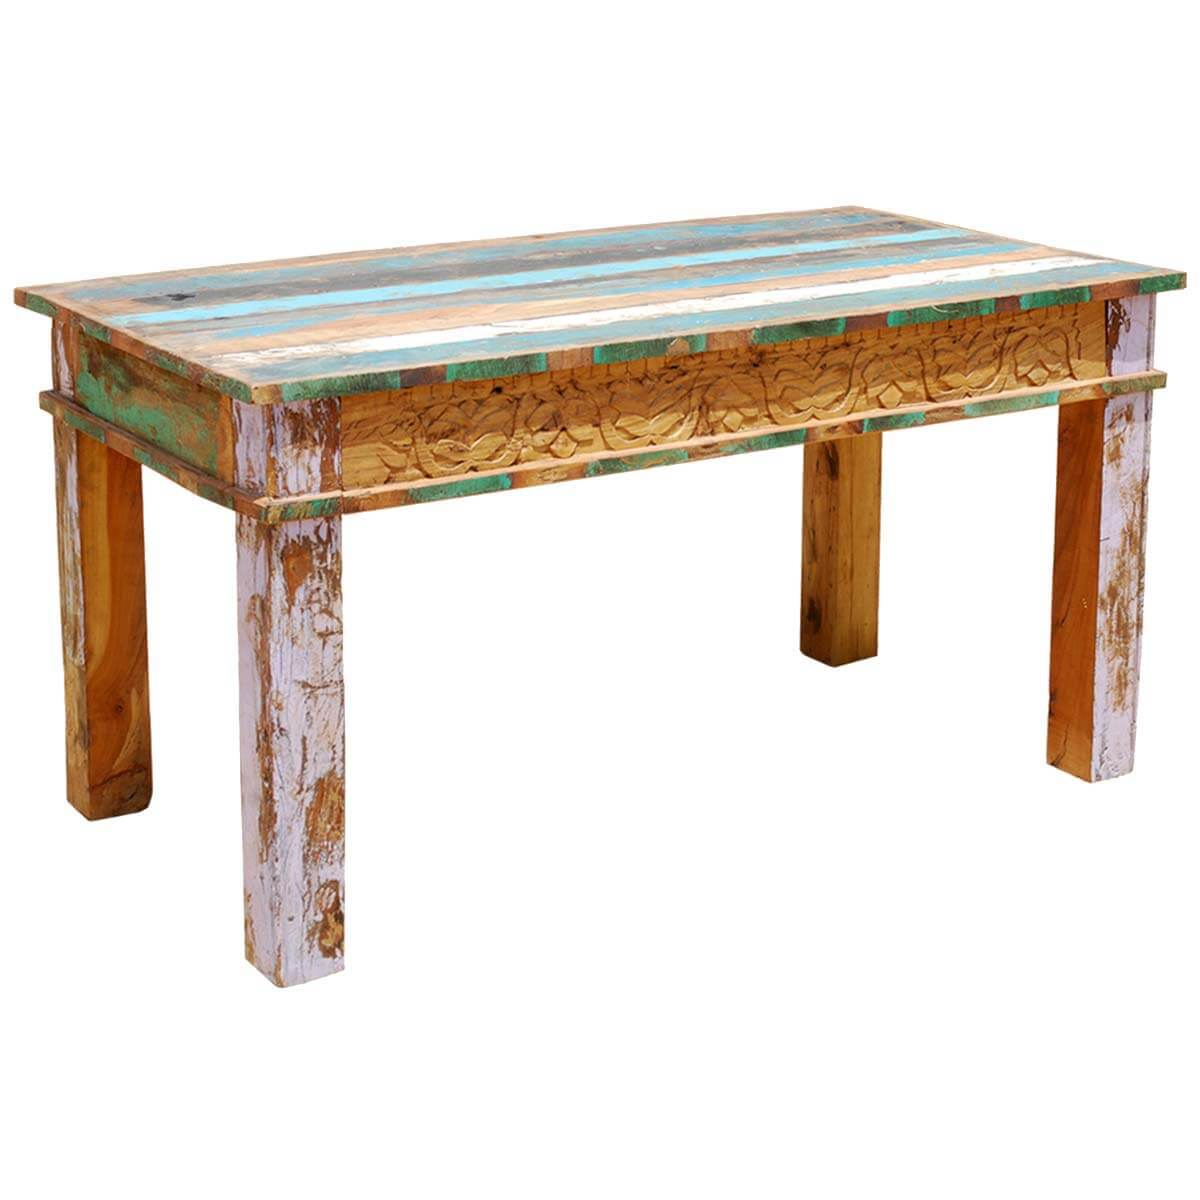 Reclaimed wood rustic dining room table furniture for Rustic dining room table